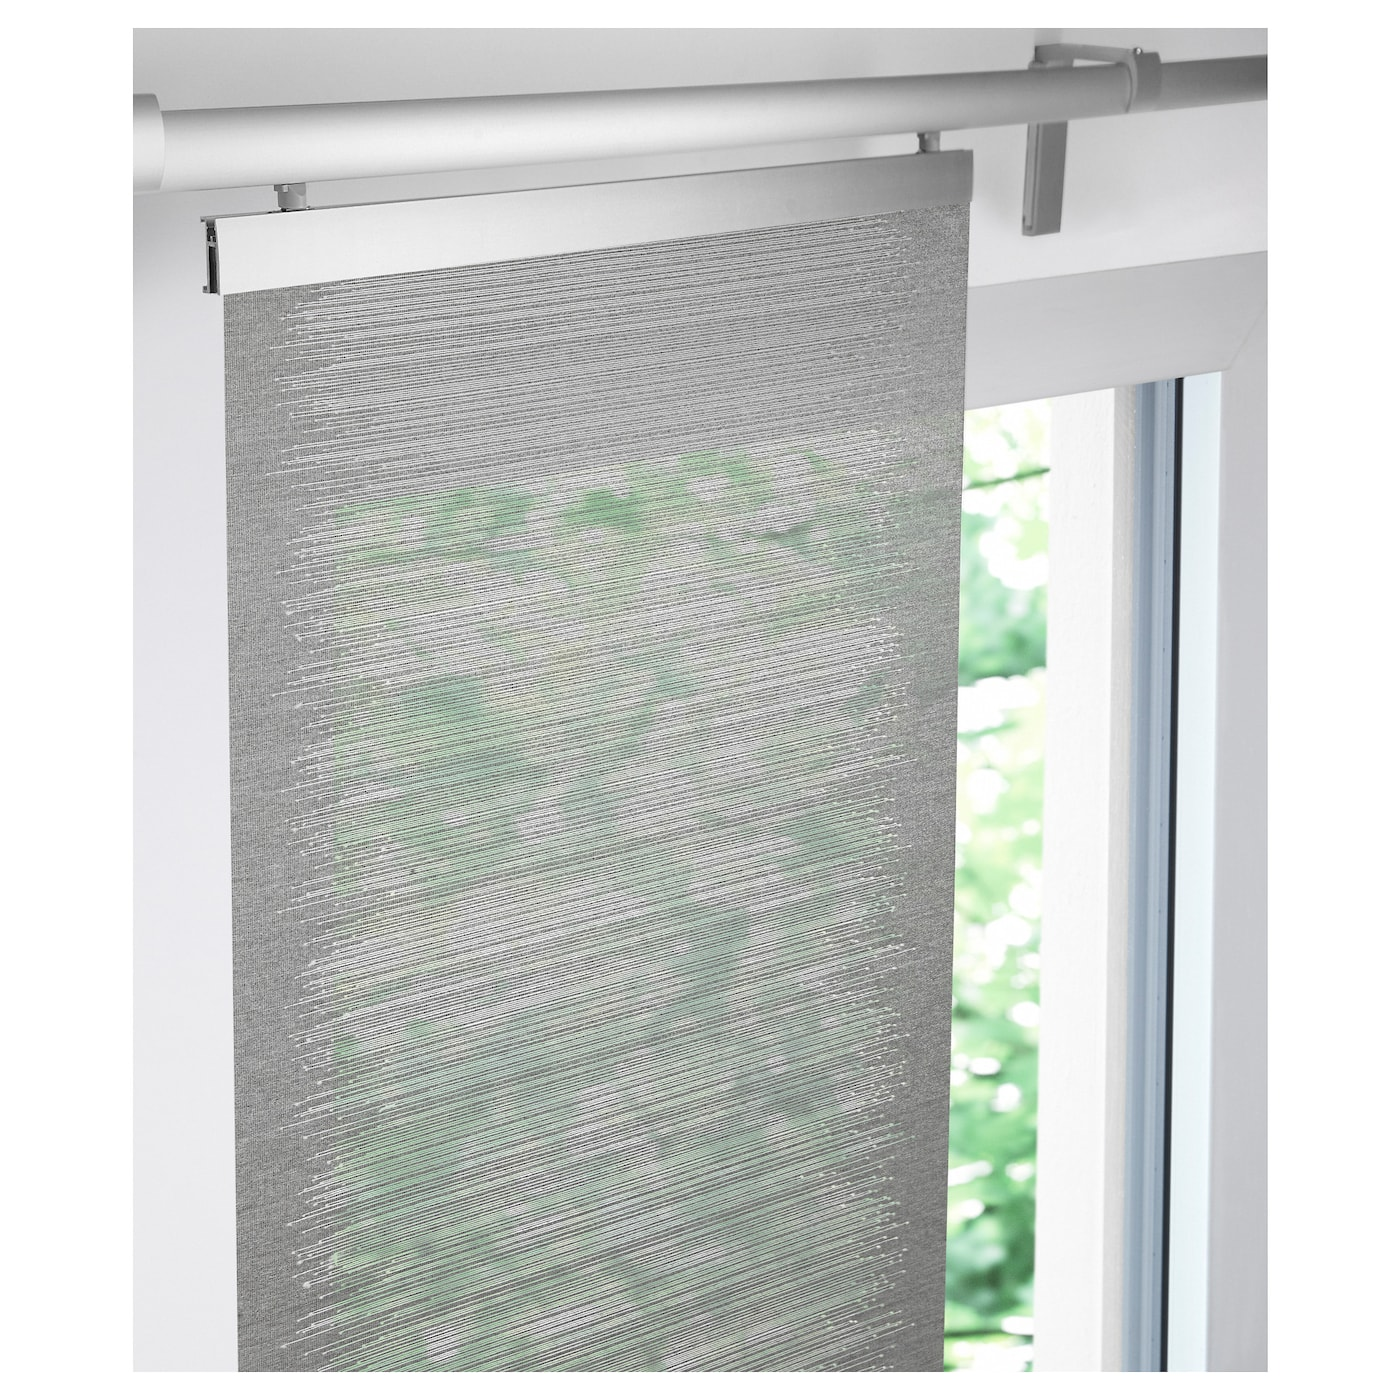 vattenax panel curtain grey white 60 x 300 cm ikea. Black Bedroom Furniture Sets. Home Design Ideas